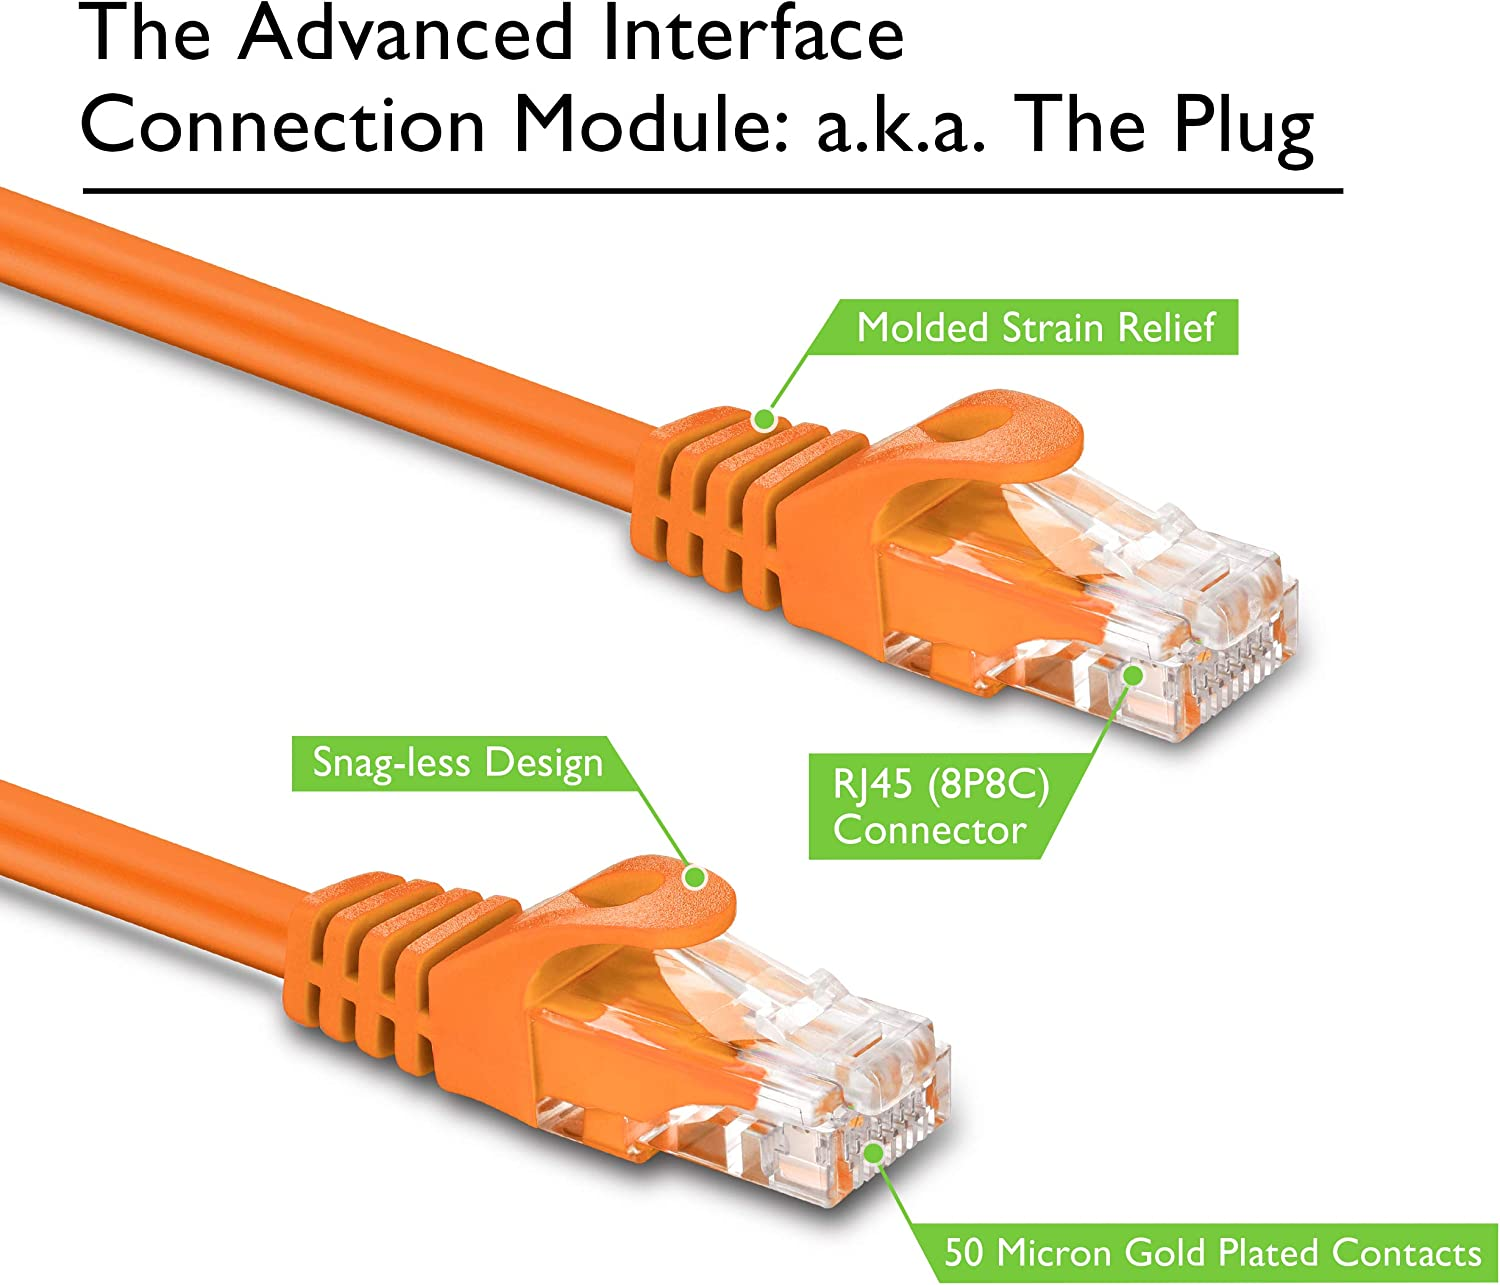 6 Inches Cat 6 Ethernet Cable Snagless Flexible Soft Tab GearIT 20-Pack Cat6 Patch Cable 0.5 Foot Orange Preimum Series